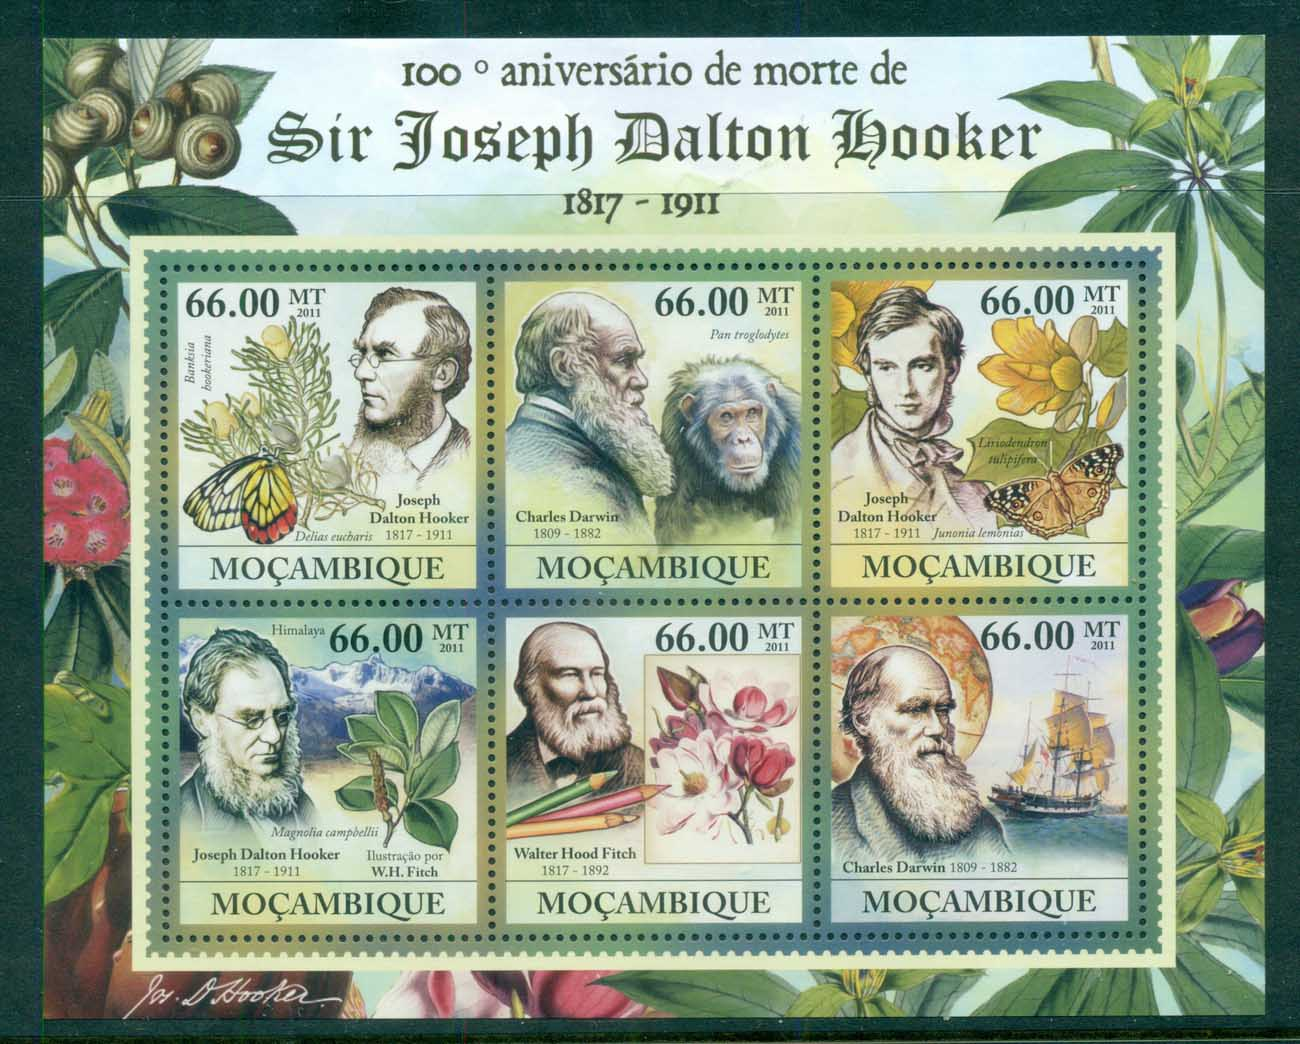 Mozambique 2011 Flora, Flower, Tree, Fruit, Flower, Sir Joseph Dalton Hooker, Darwin MS MUH MOZ023